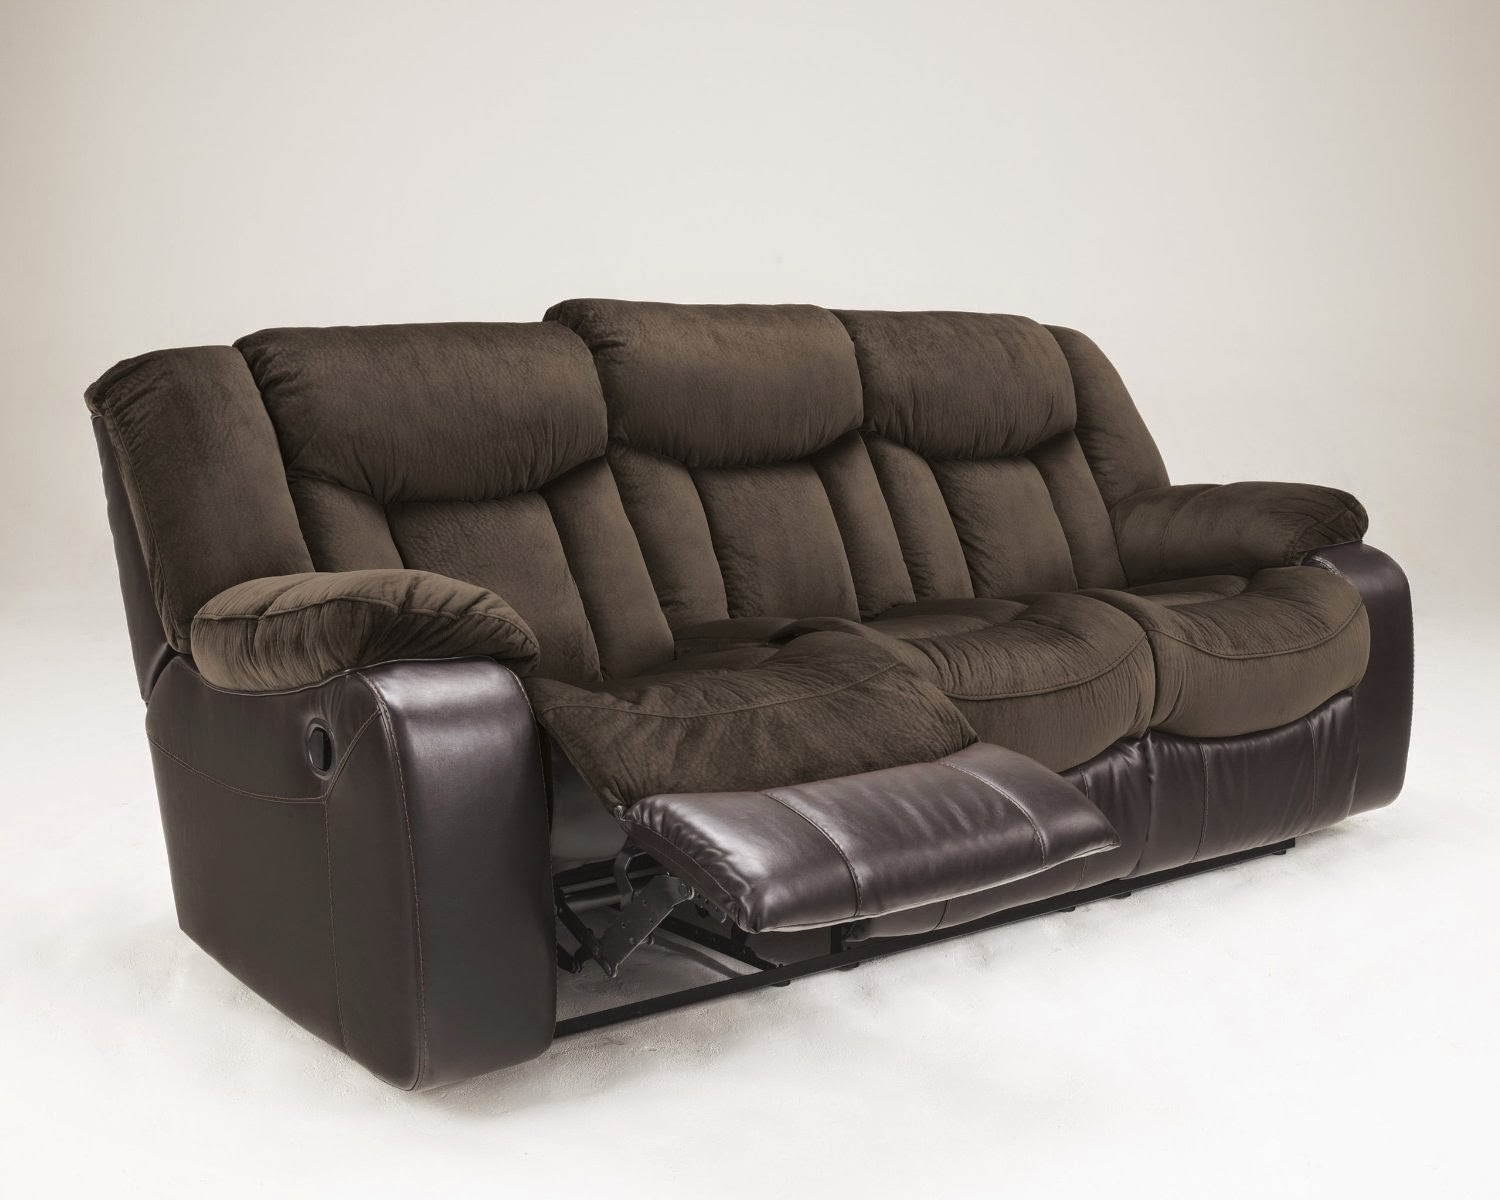 electric recliner sofa singapore leather brown polish ashley furniture reclining repair